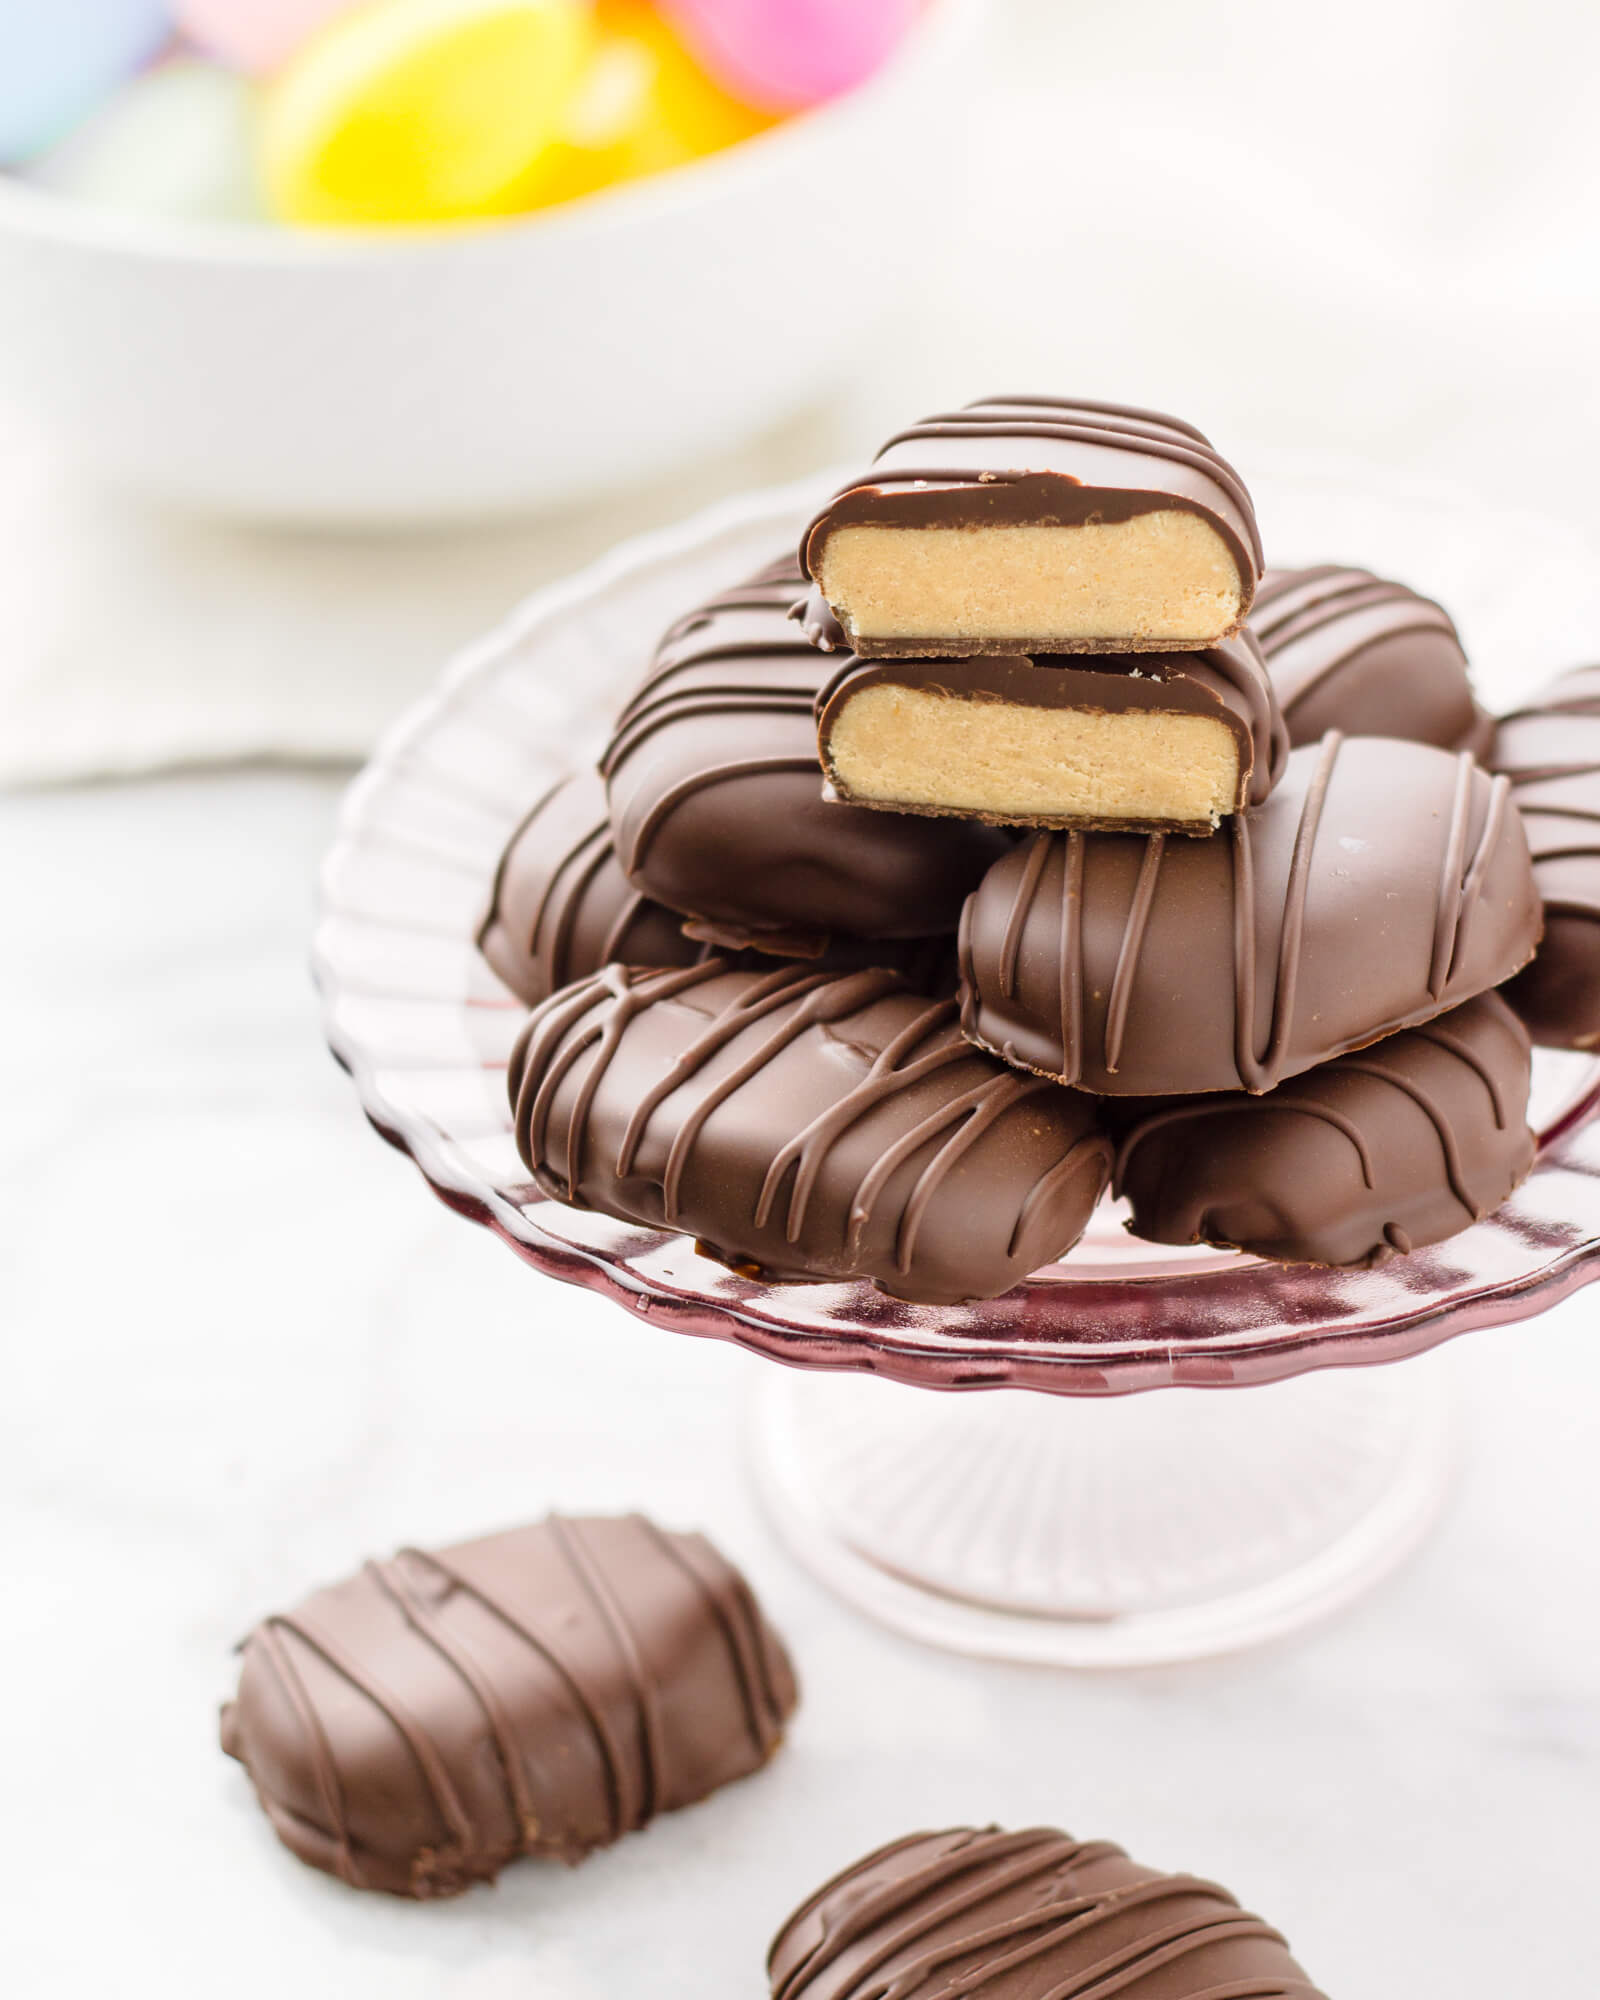 eat healthier homemade reeses peanut butter eggs for and Easter treat this year, chocolate dipped eggs displayed on a pink cake stand with colorful Easter eggs in the background, vegan option and coconut flour free with nut free option